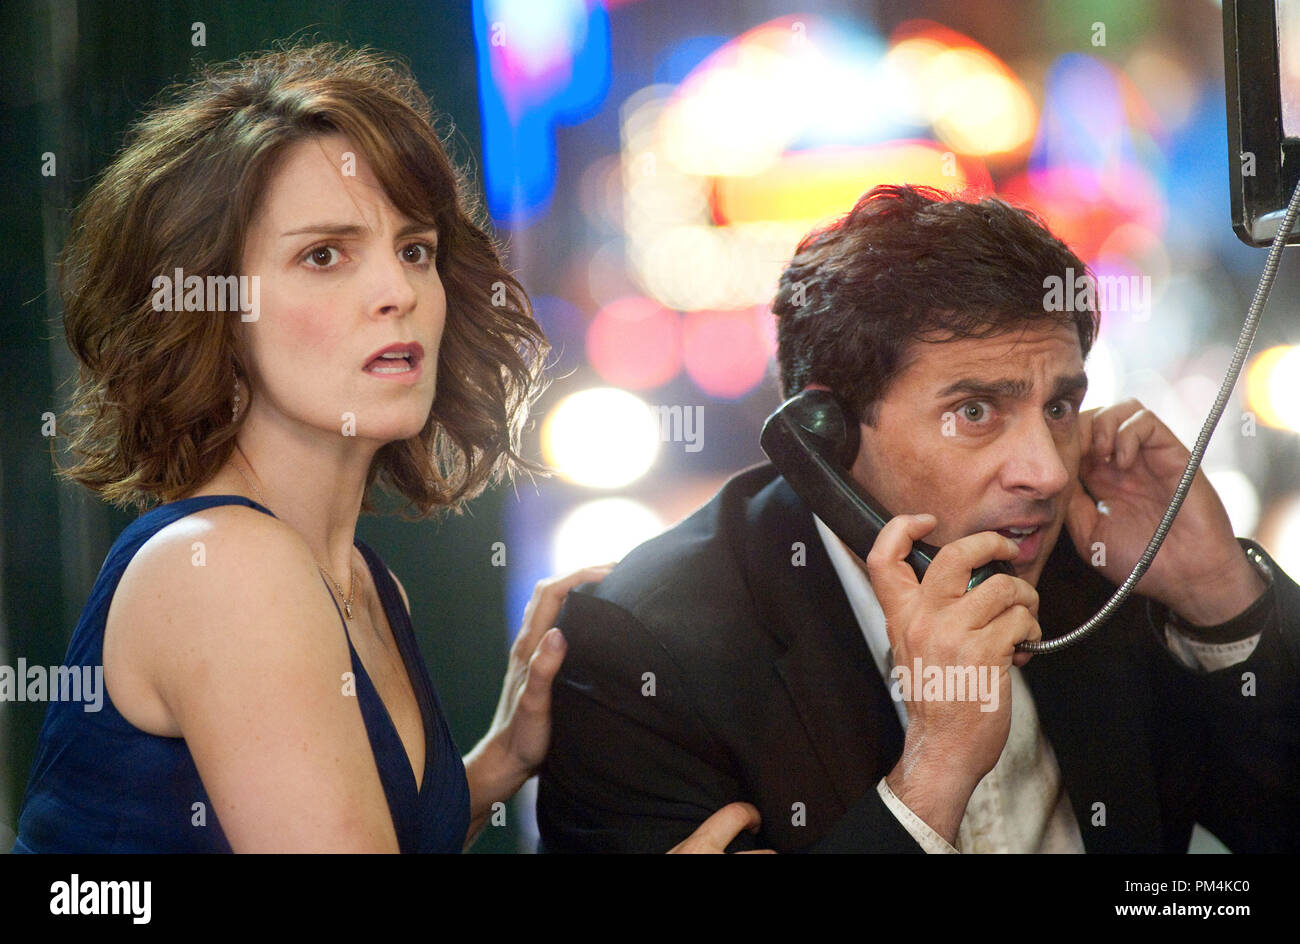 DN-138    In the midst of the date night from hell, Claire (Tina Fey) and Phil (Steve Carell) make a frantic call for help. Photo credit: Myles Aronowitz - Stock Image